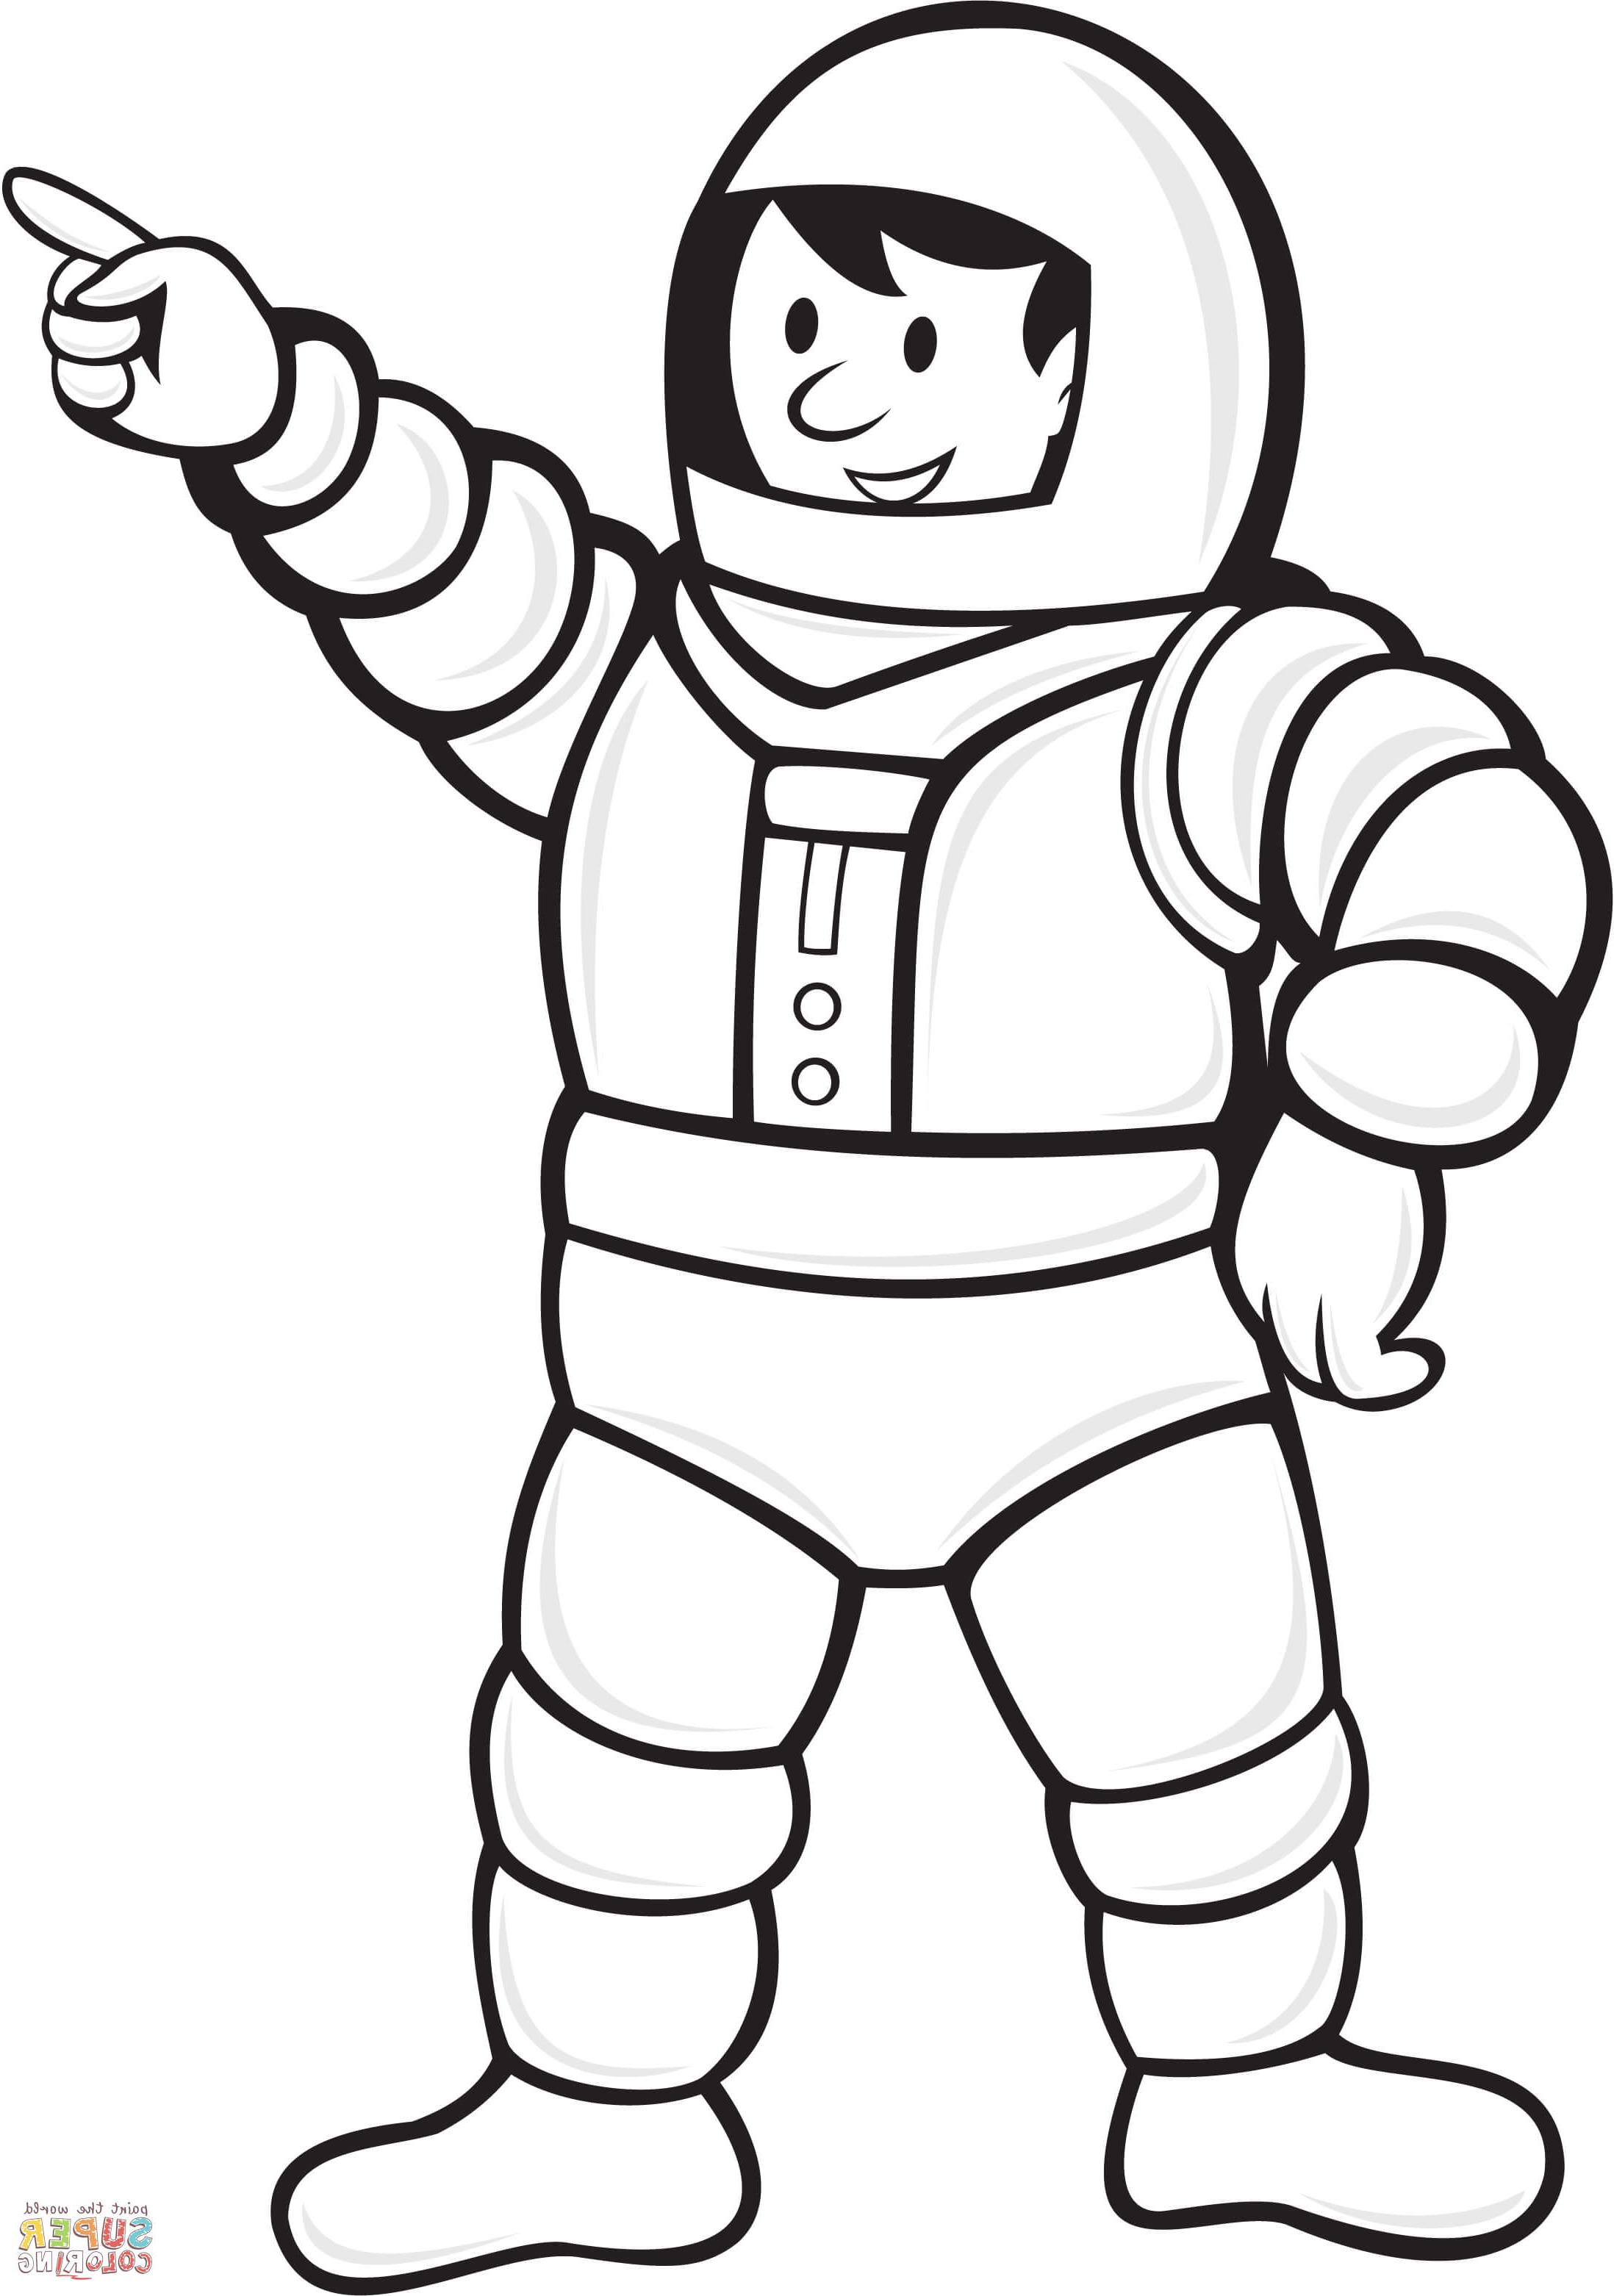 astronaut coloring pages print - astronauts drawing at free for personal